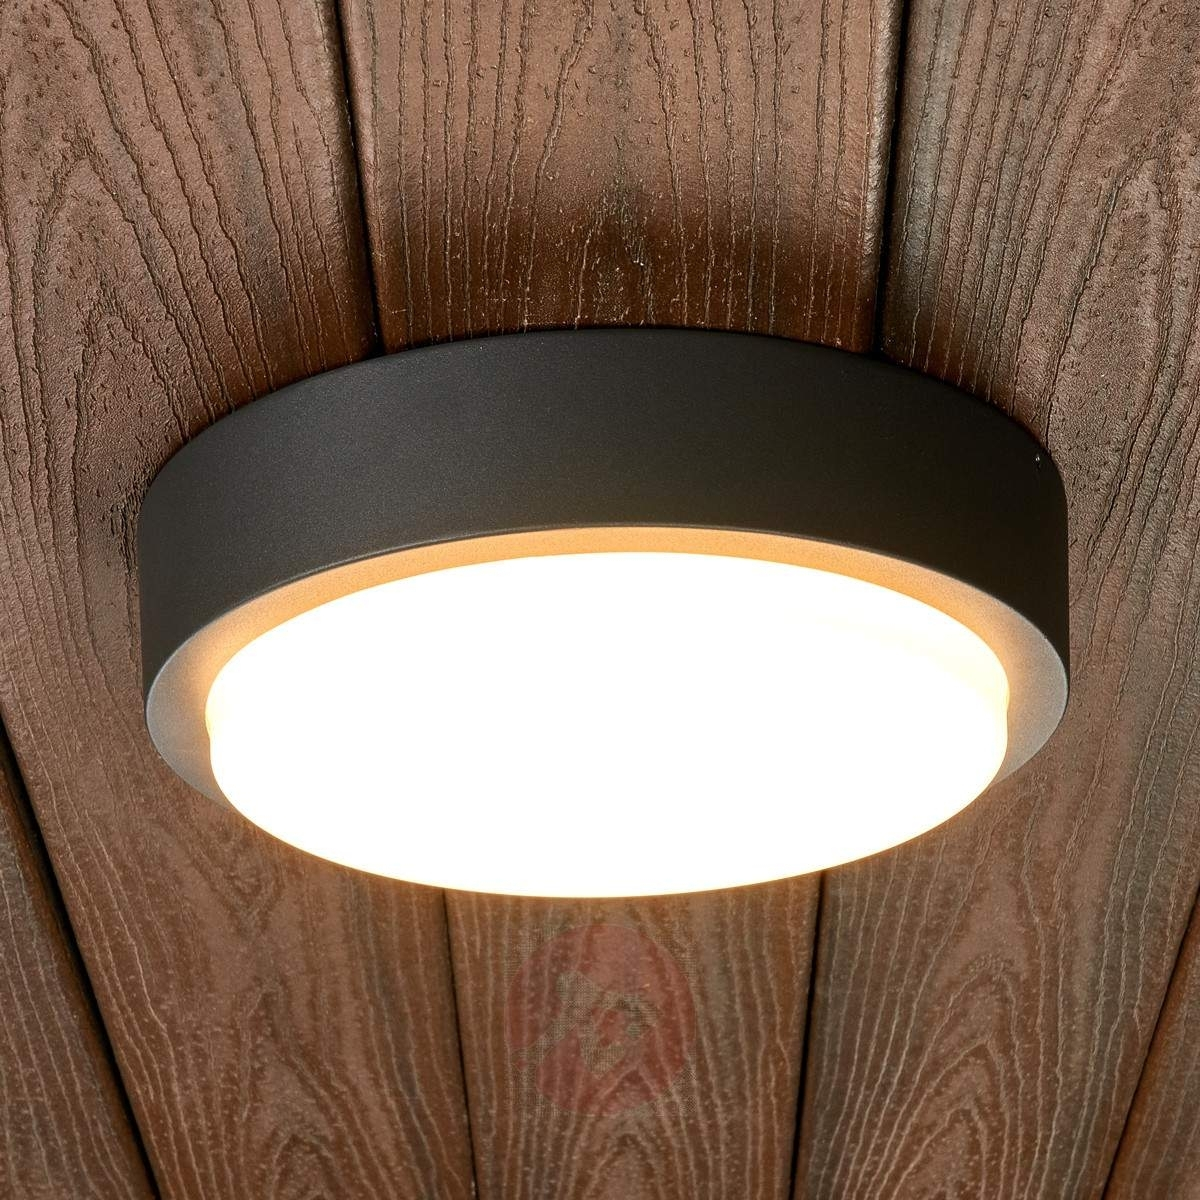 Inspiration about Round Led Outdoor Wall Light Maxine | Lights.ie For Round Outdoor Wall Lights (#10 of 15)